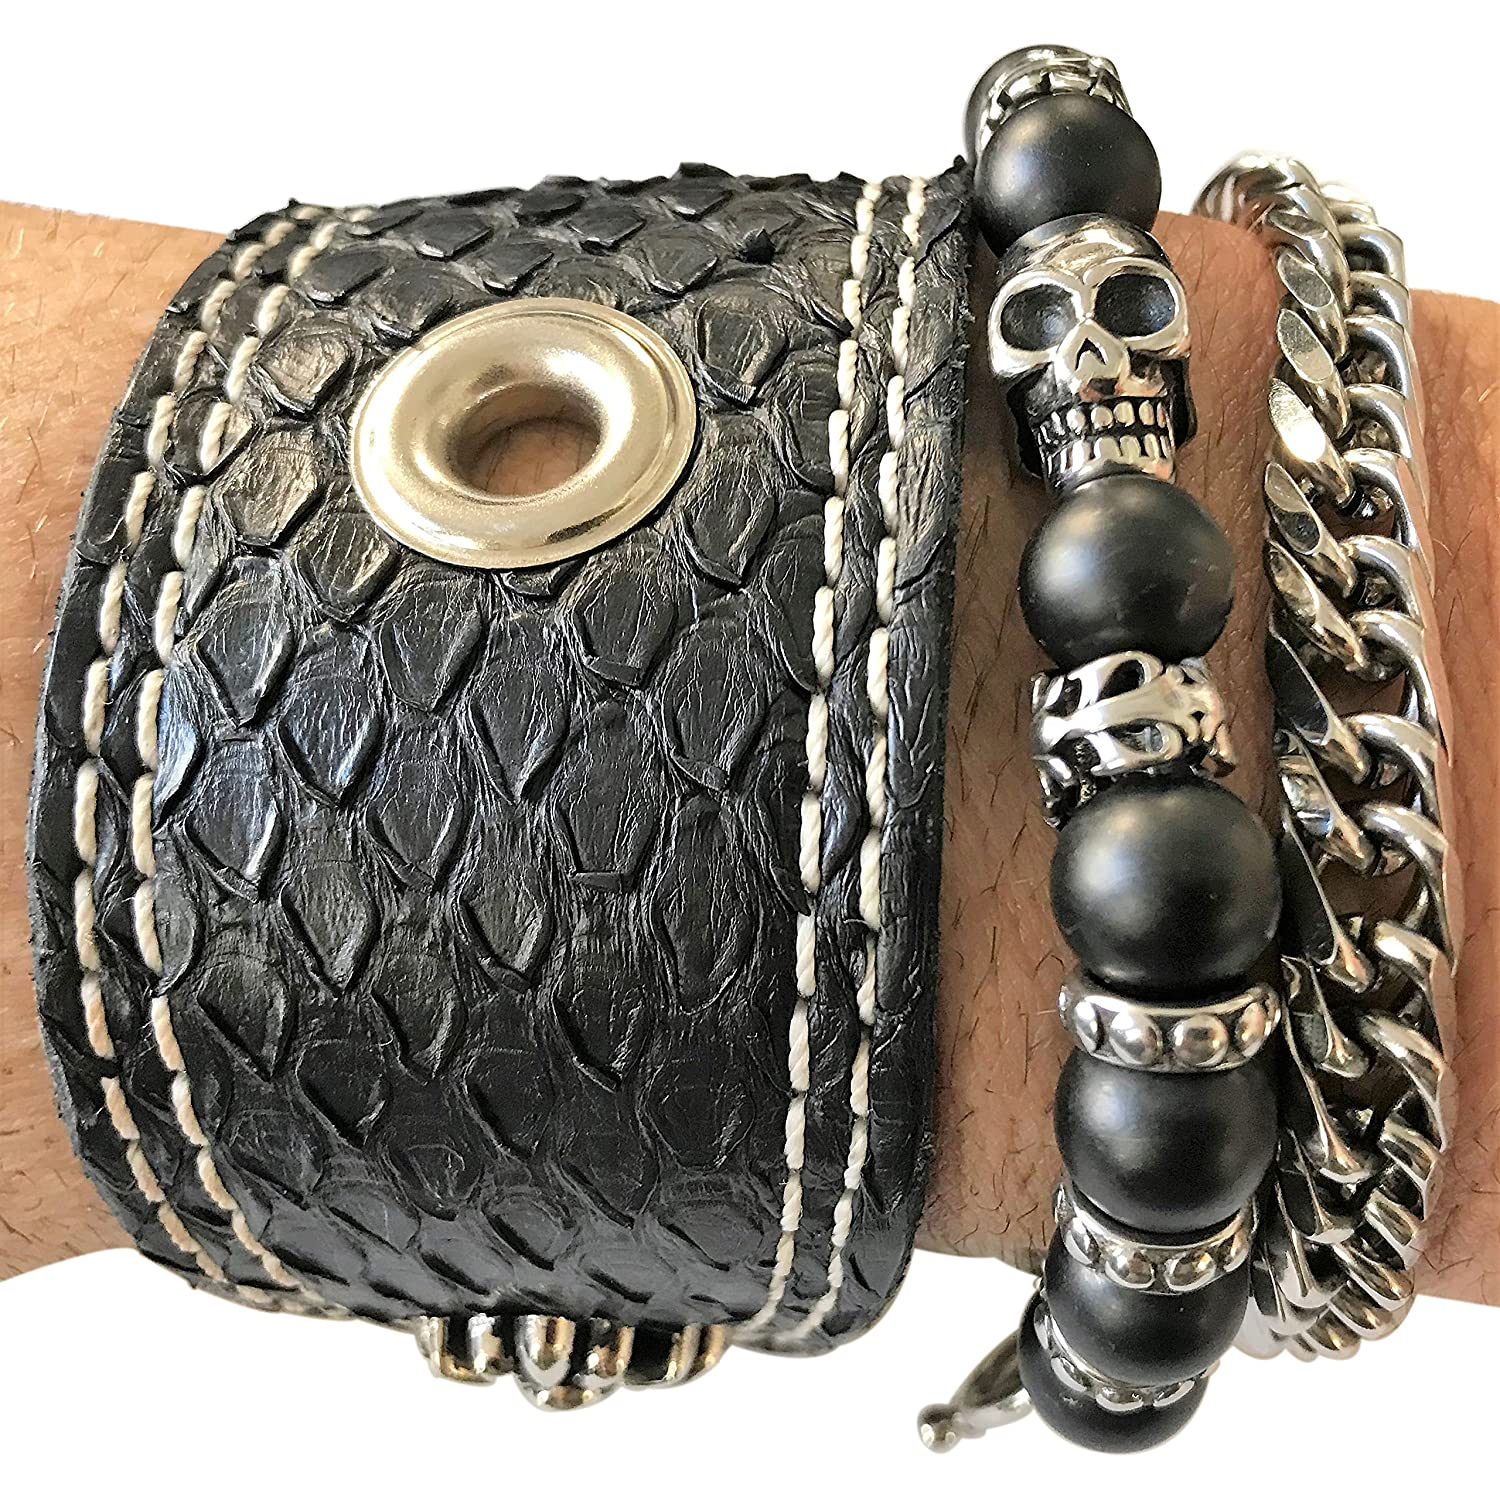 Stacked Black Anaconda Leather, Onyx Beads & Skull Stainless Steel Chain Bracelet - DeluxeAdultCostumes.com